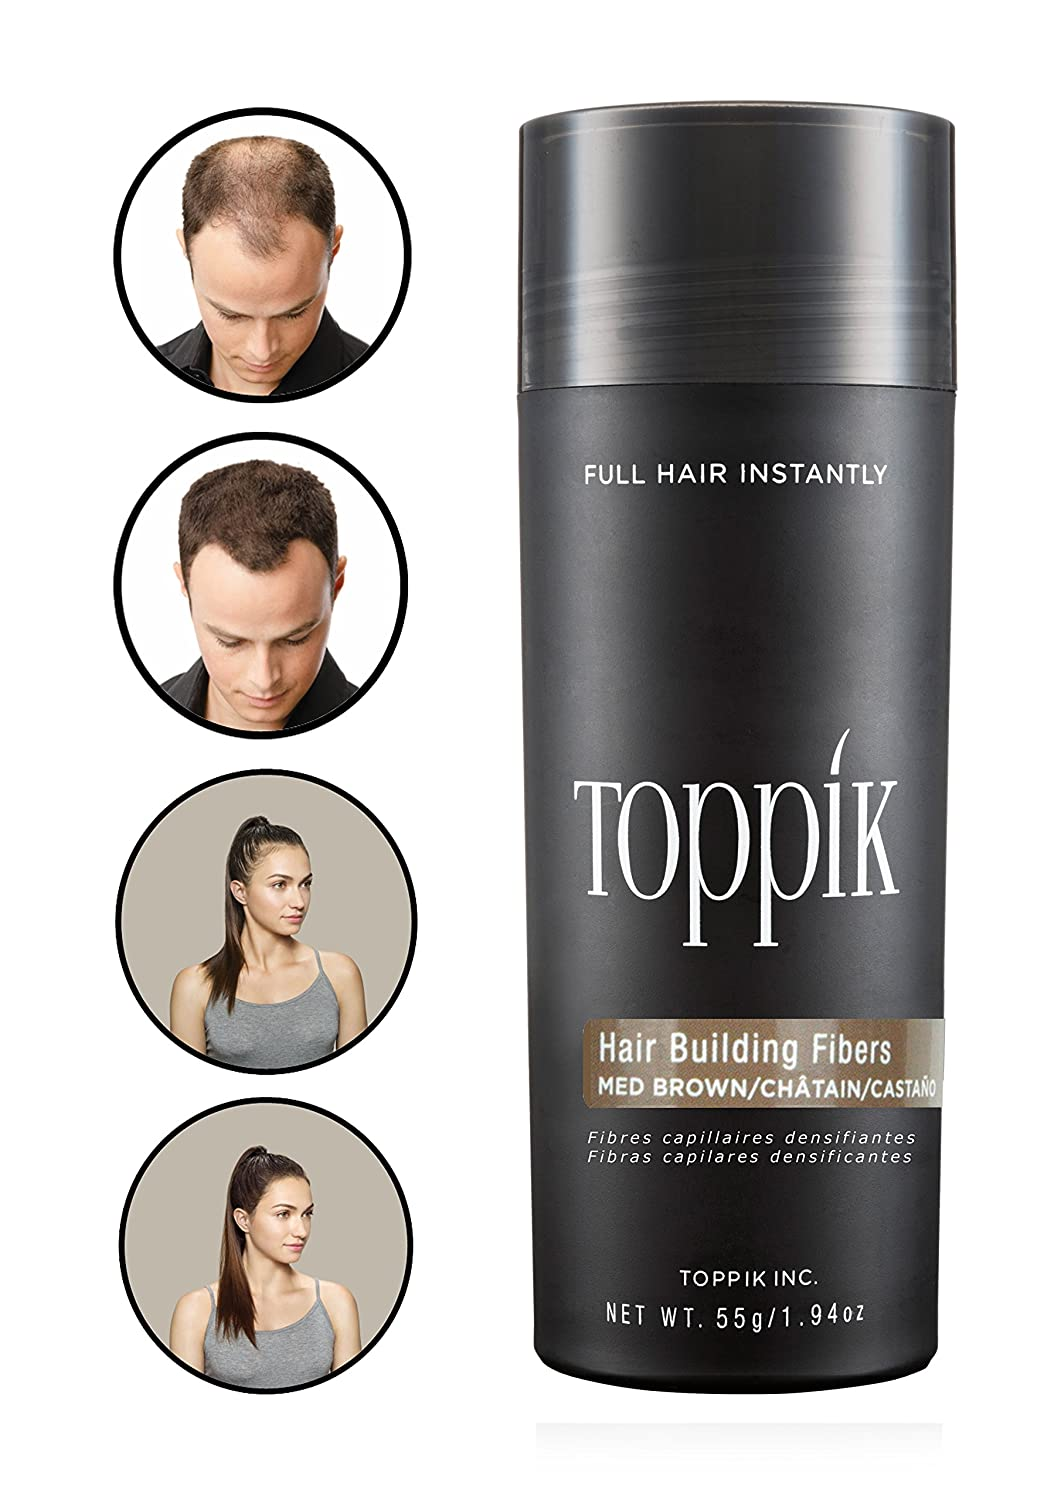 Toppik Hair Building Fibres for Instantly Fuller Hair, Medium Brown, 55-g TOWIR TG3